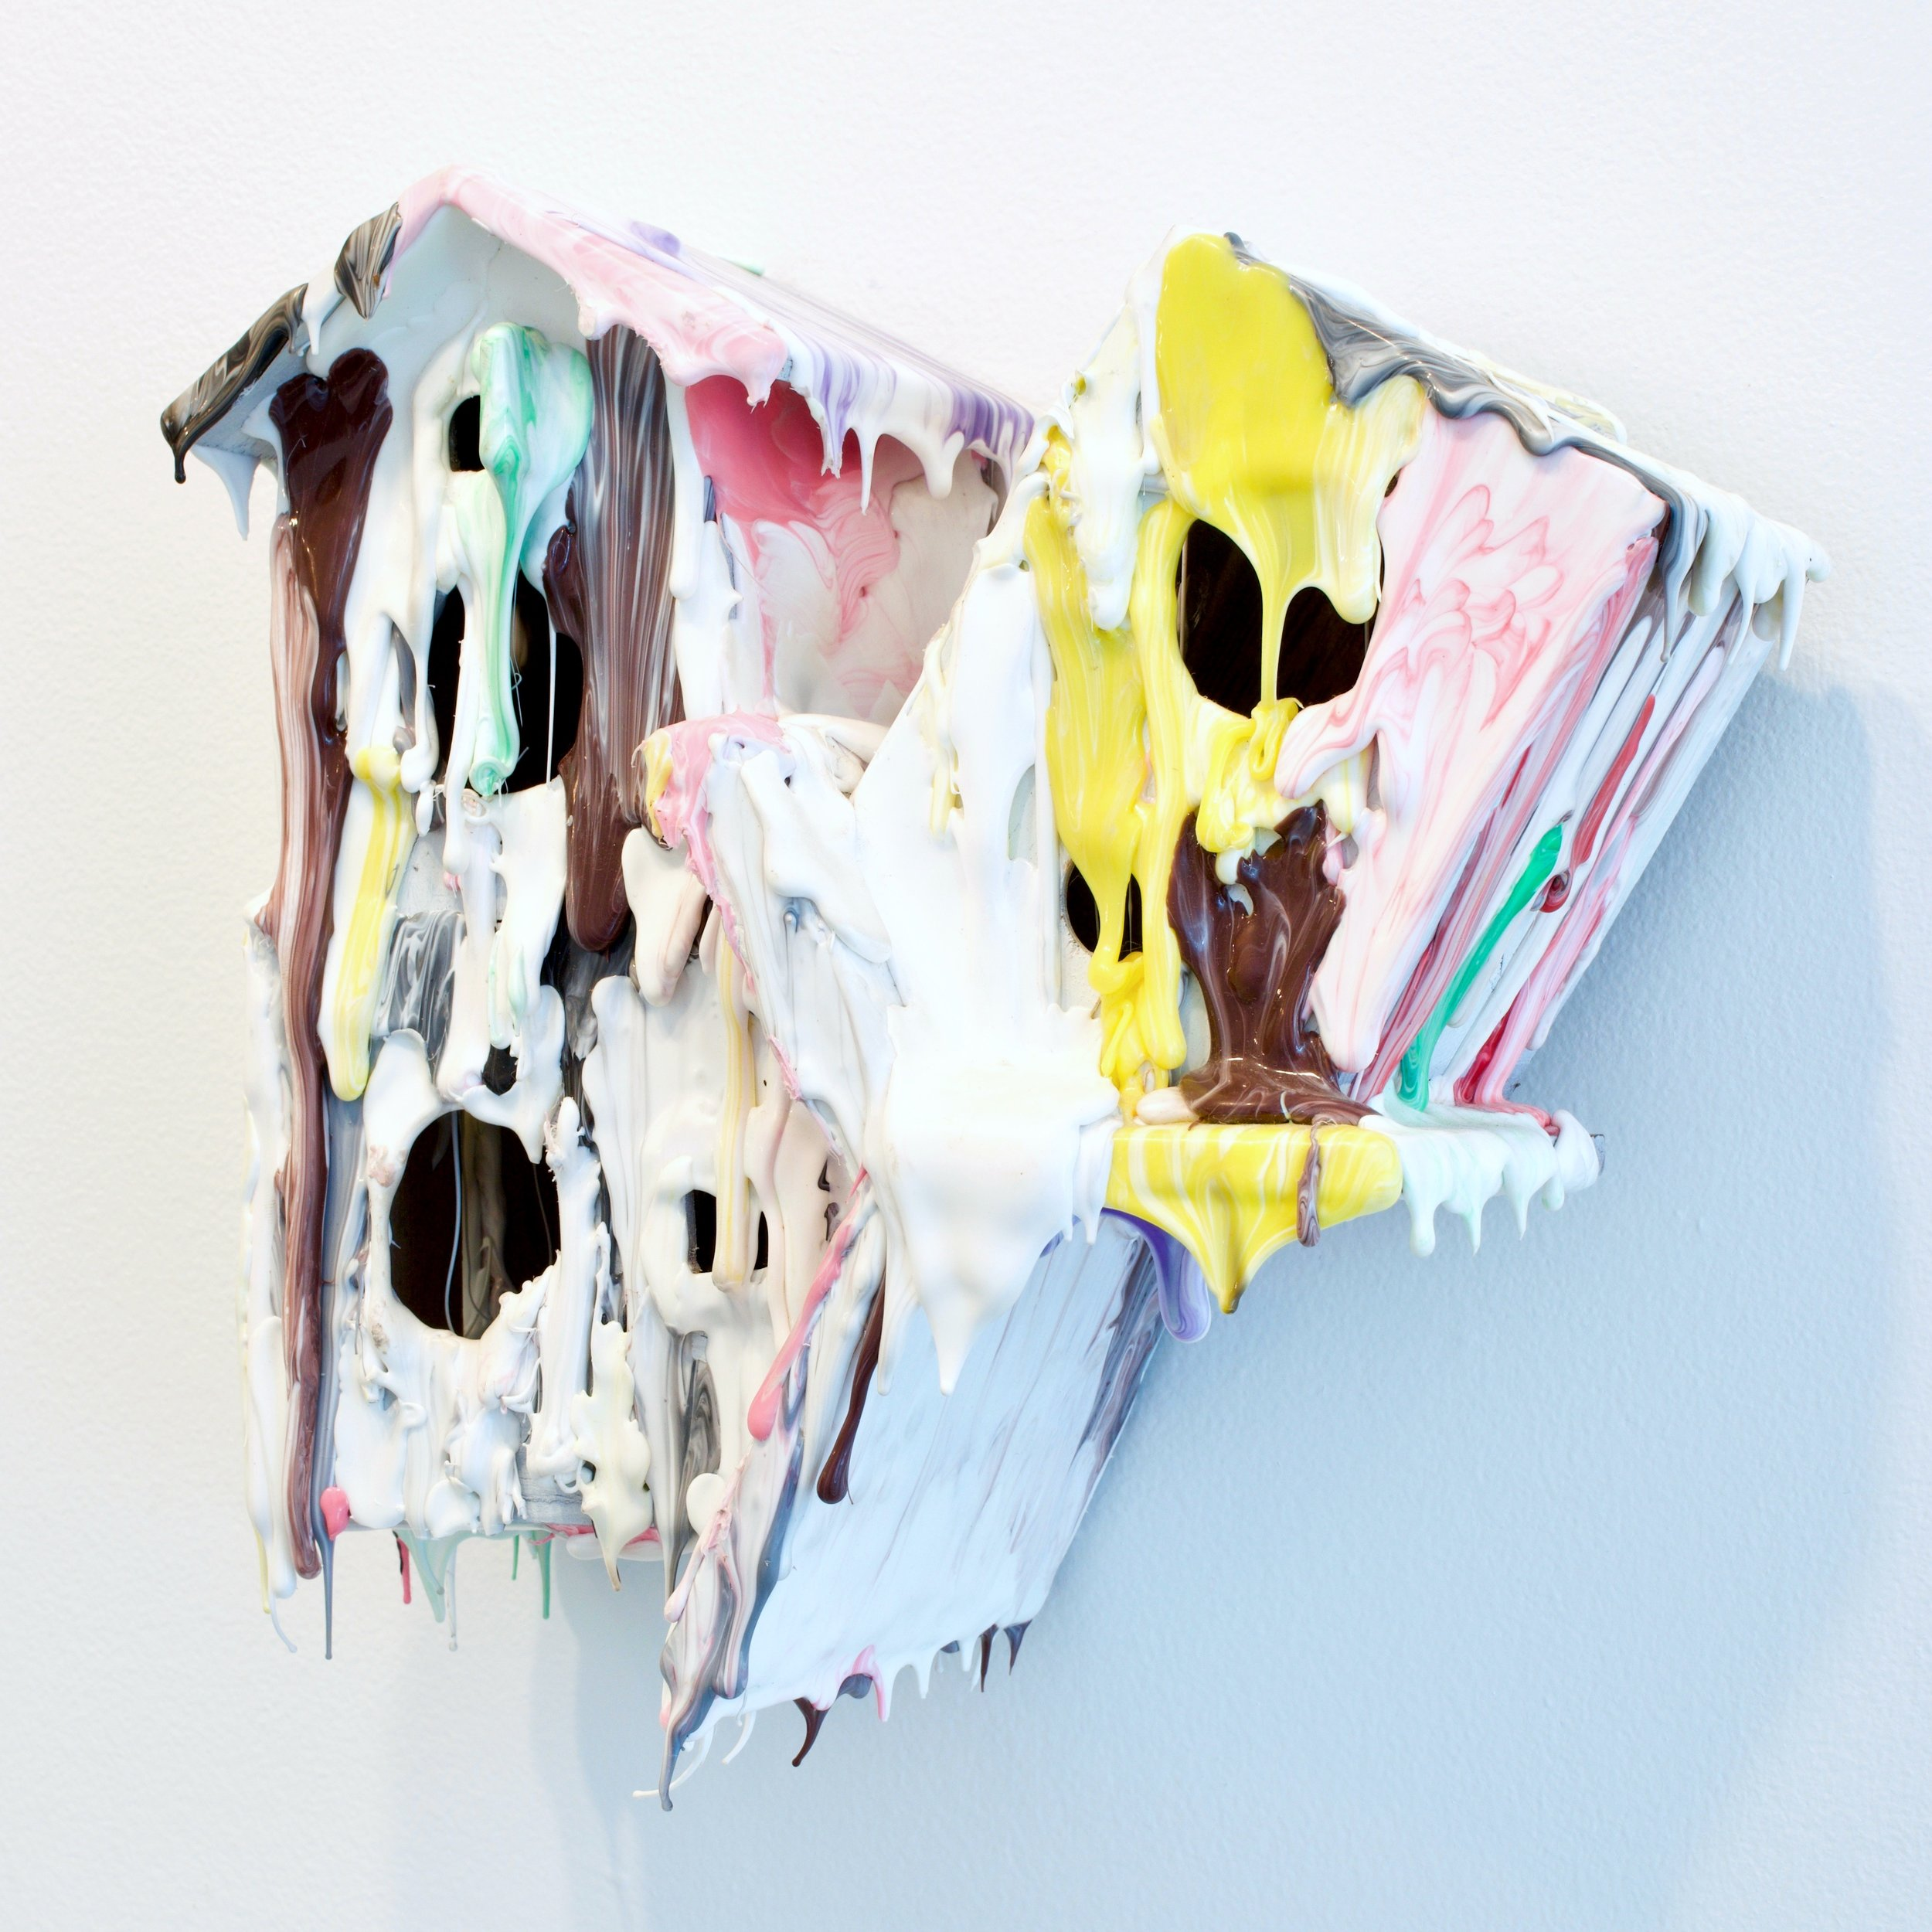 Daniel Bruttig, Tree House taffy 2014-16.  Thermoplastic, adhesive, crayon, paint Wooden cut outs, Clock case,  13 x 12 x 6 in